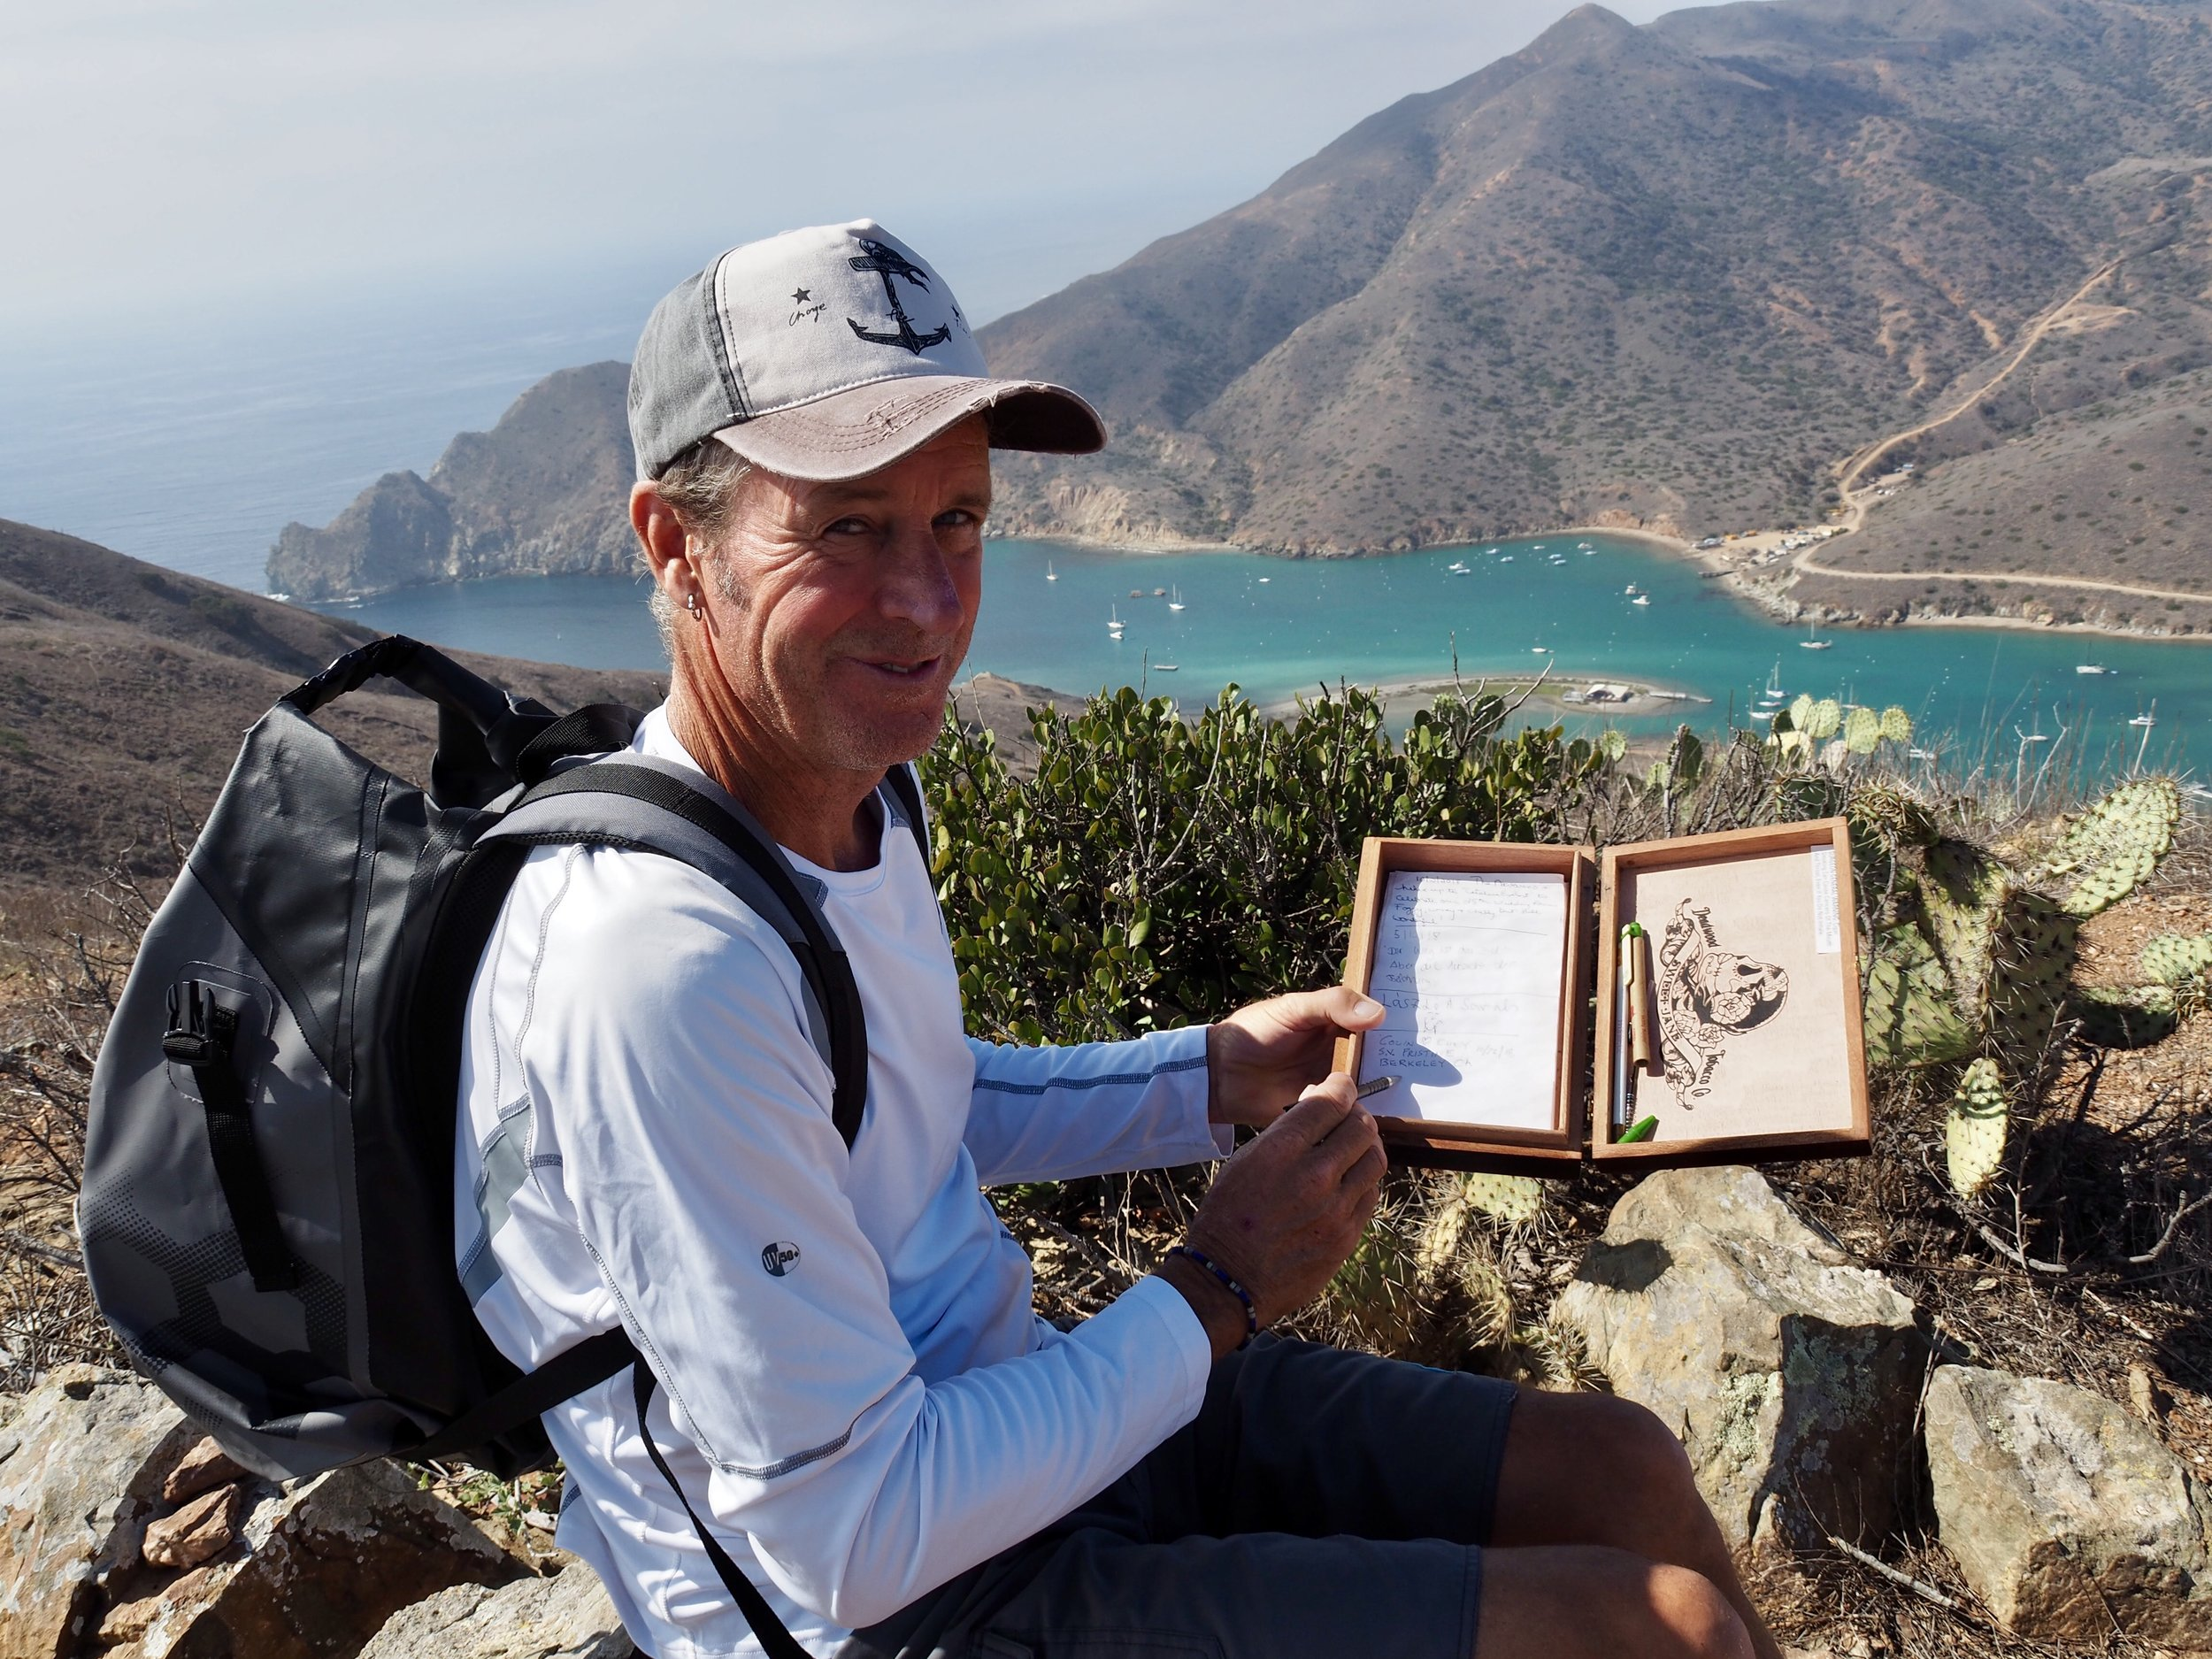 Colin entered us in the hikers logbook